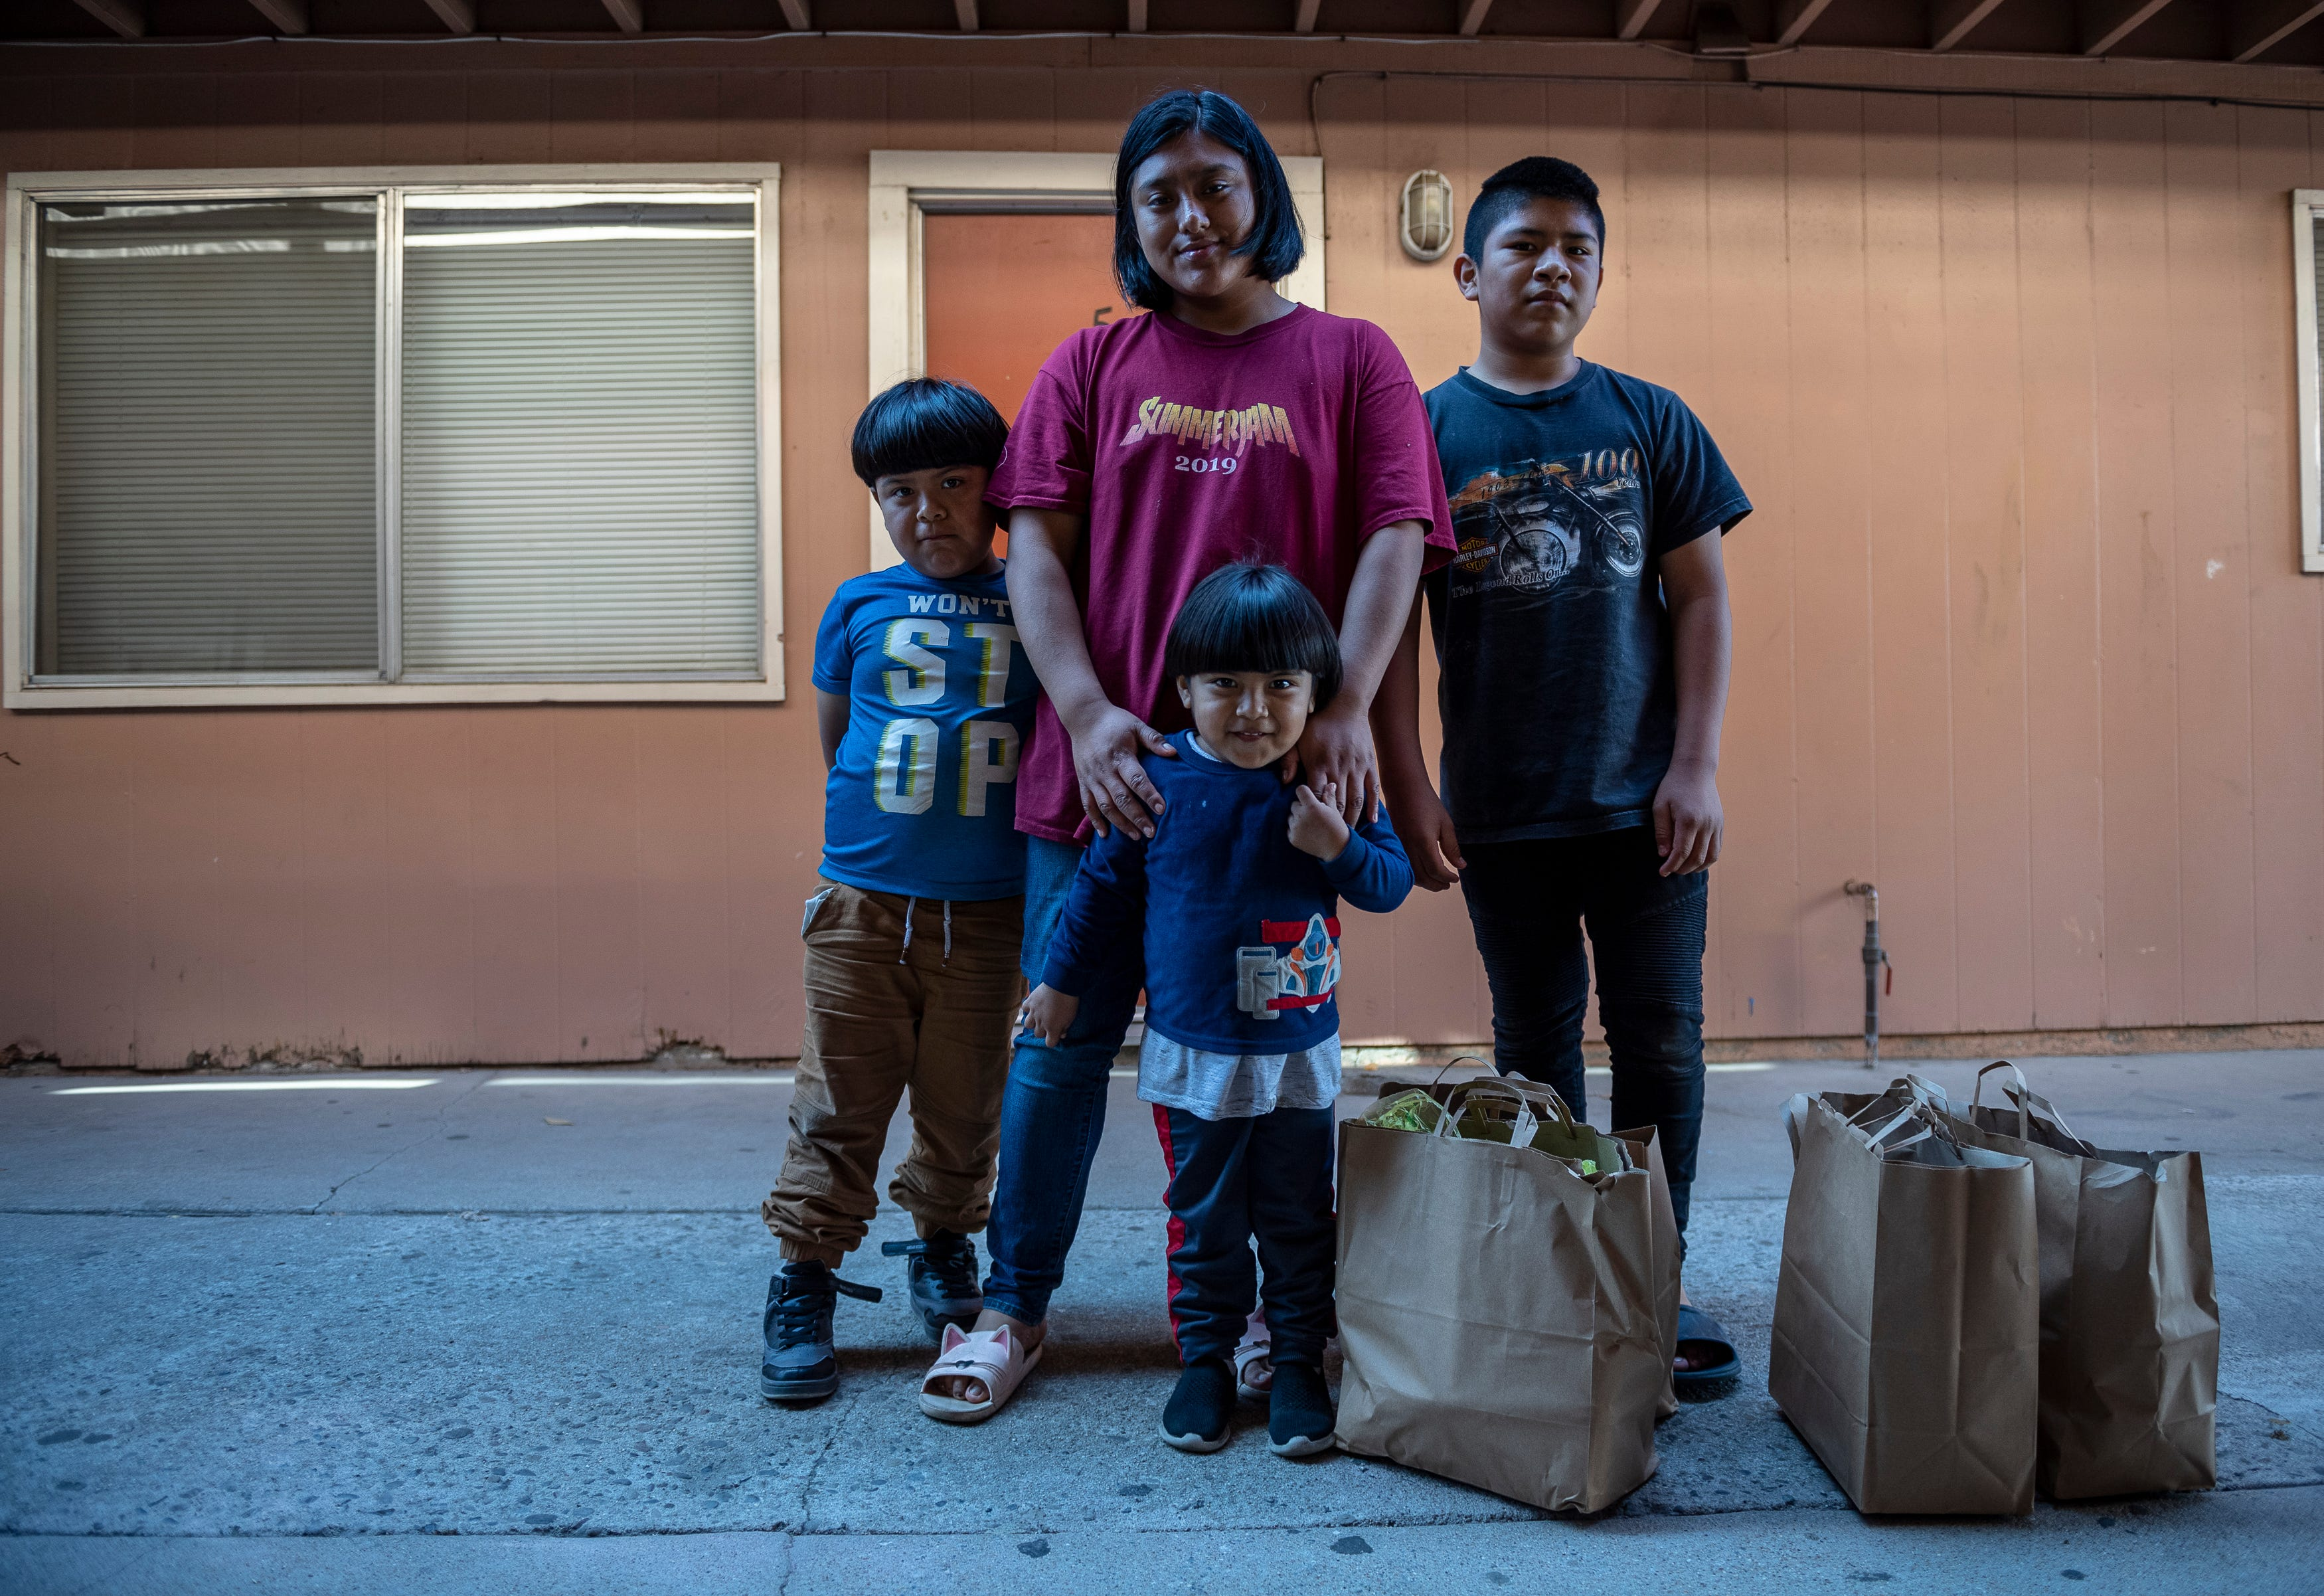 Hugo Salvador, left, Resi Salvador, Jesus Salvador, middle, and Aldo Salvador stand next to a few donated grocery bags full of food products in front of their two-bedroom apartment in north Salinas, Calif., on Saturday, Sept. 26, 2020.